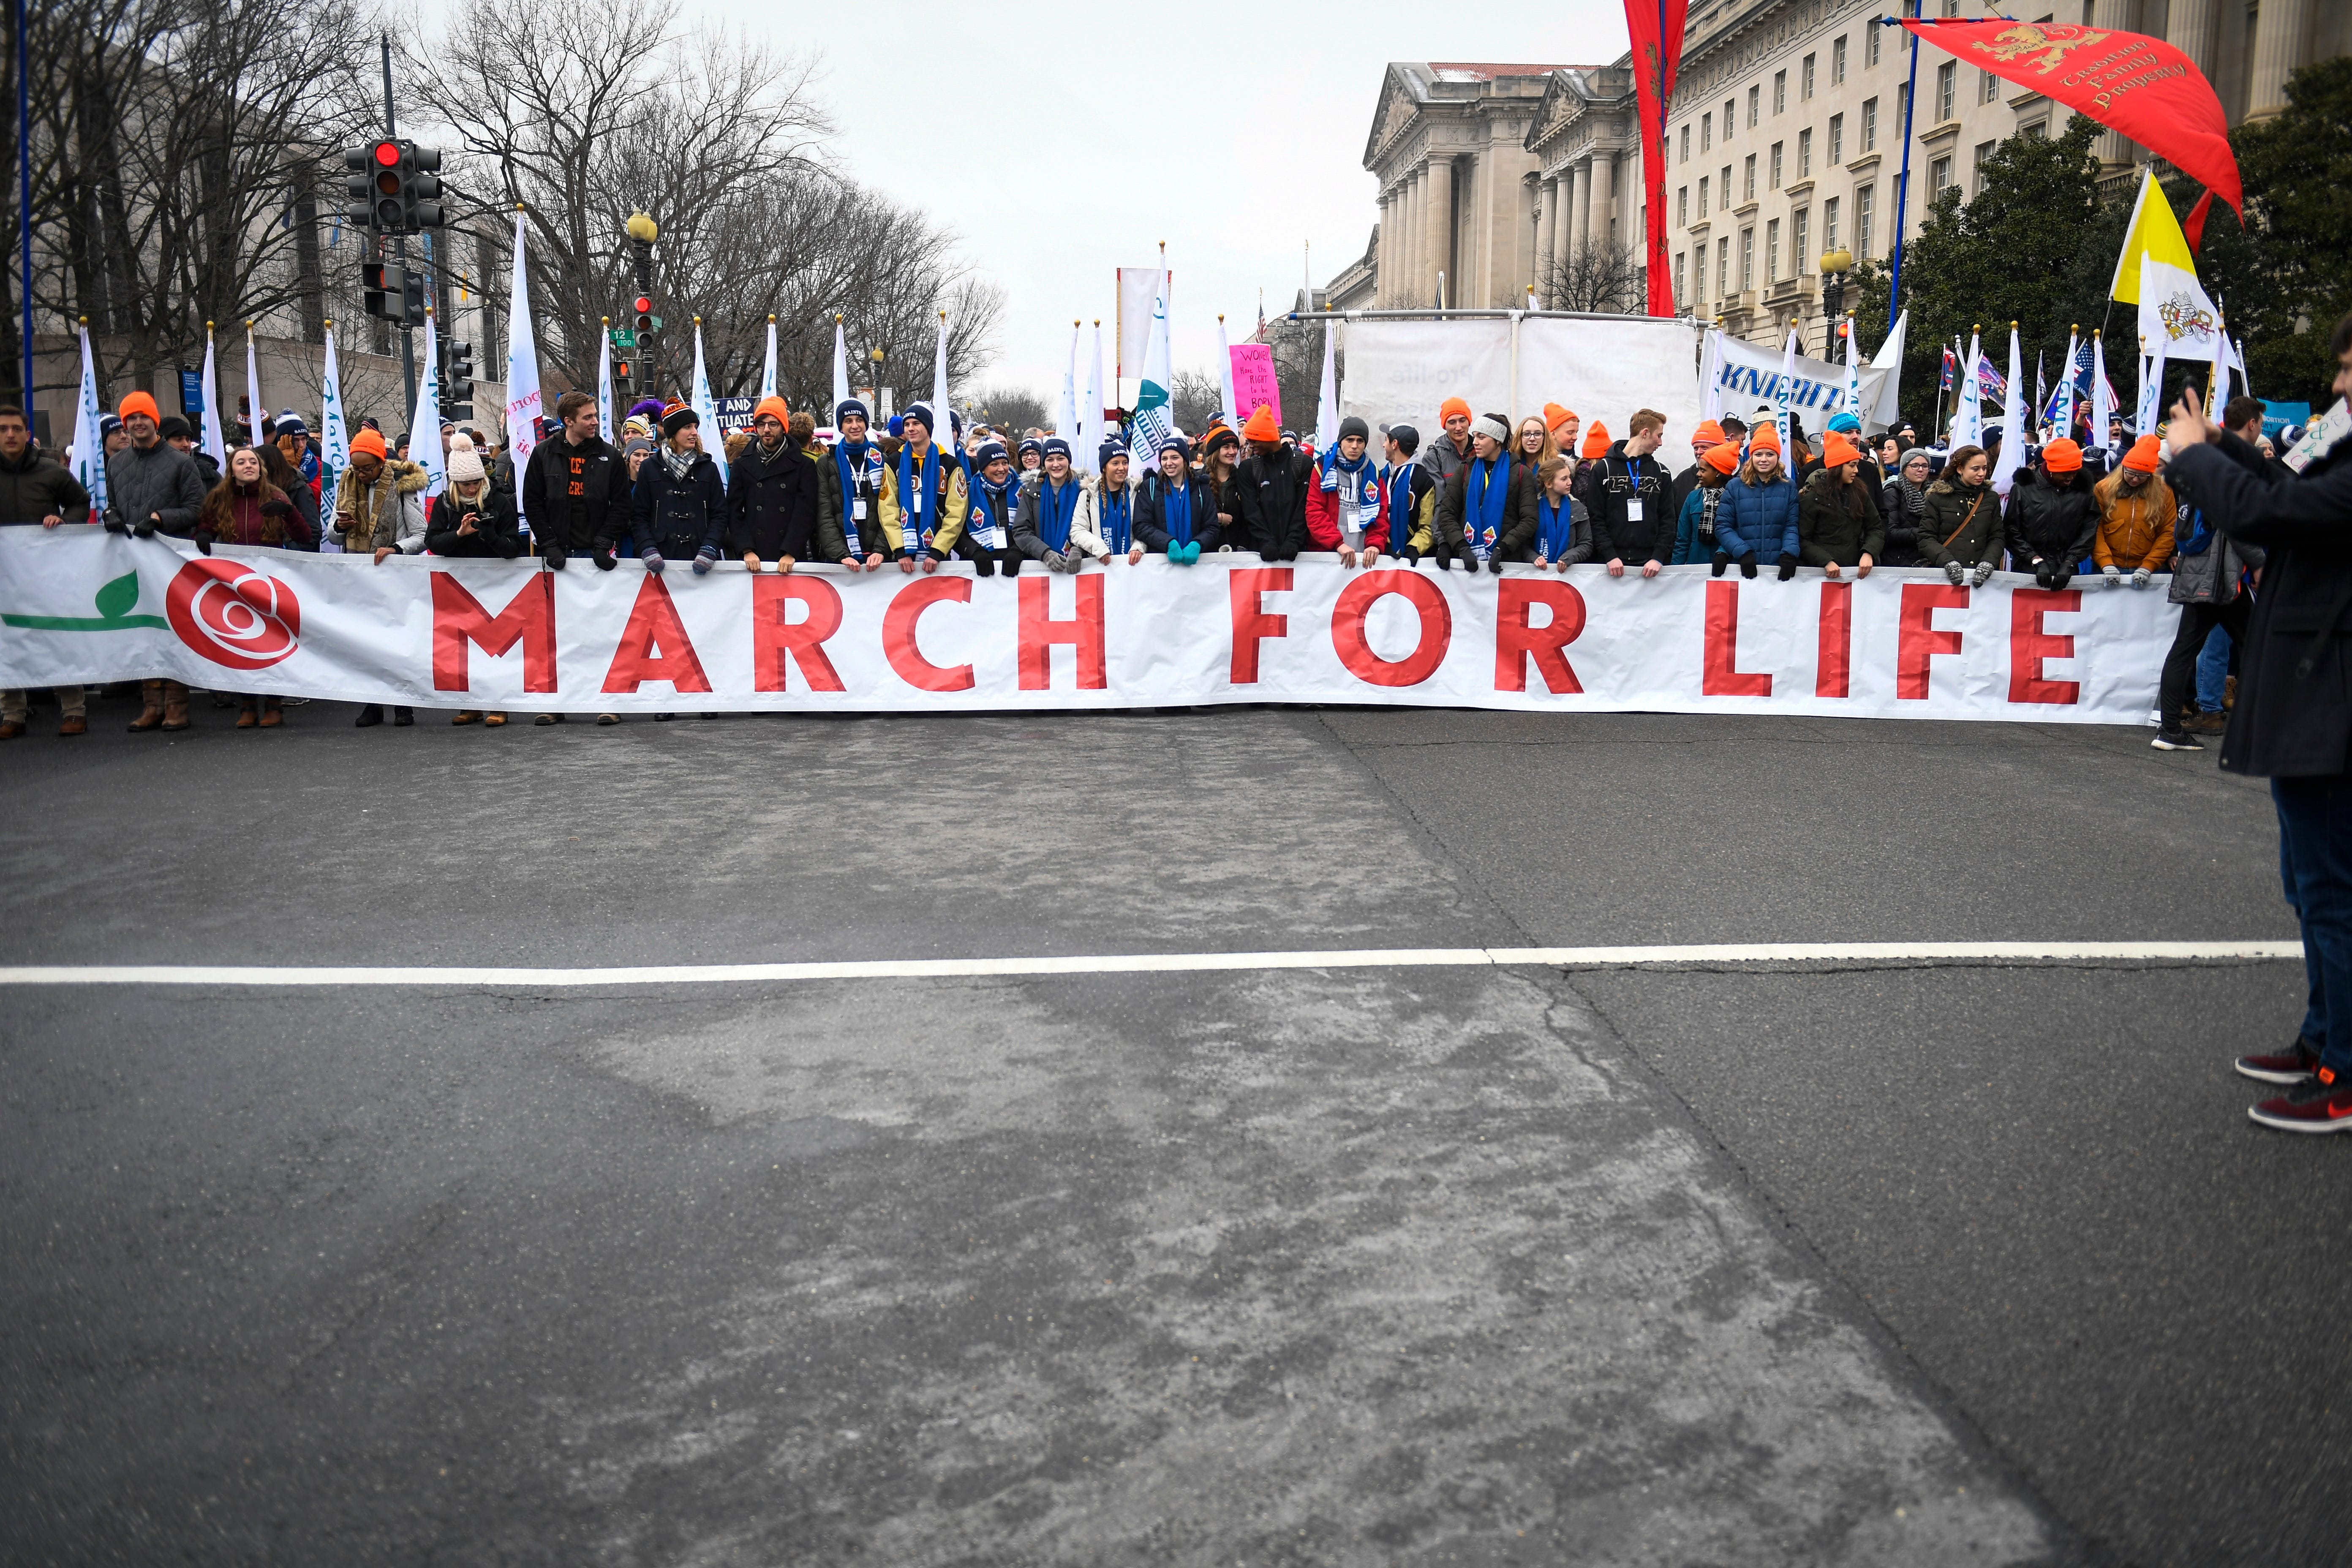 Thousands from around the country joined the 46th March for Life on Jan. 18, 2019 in Washington.